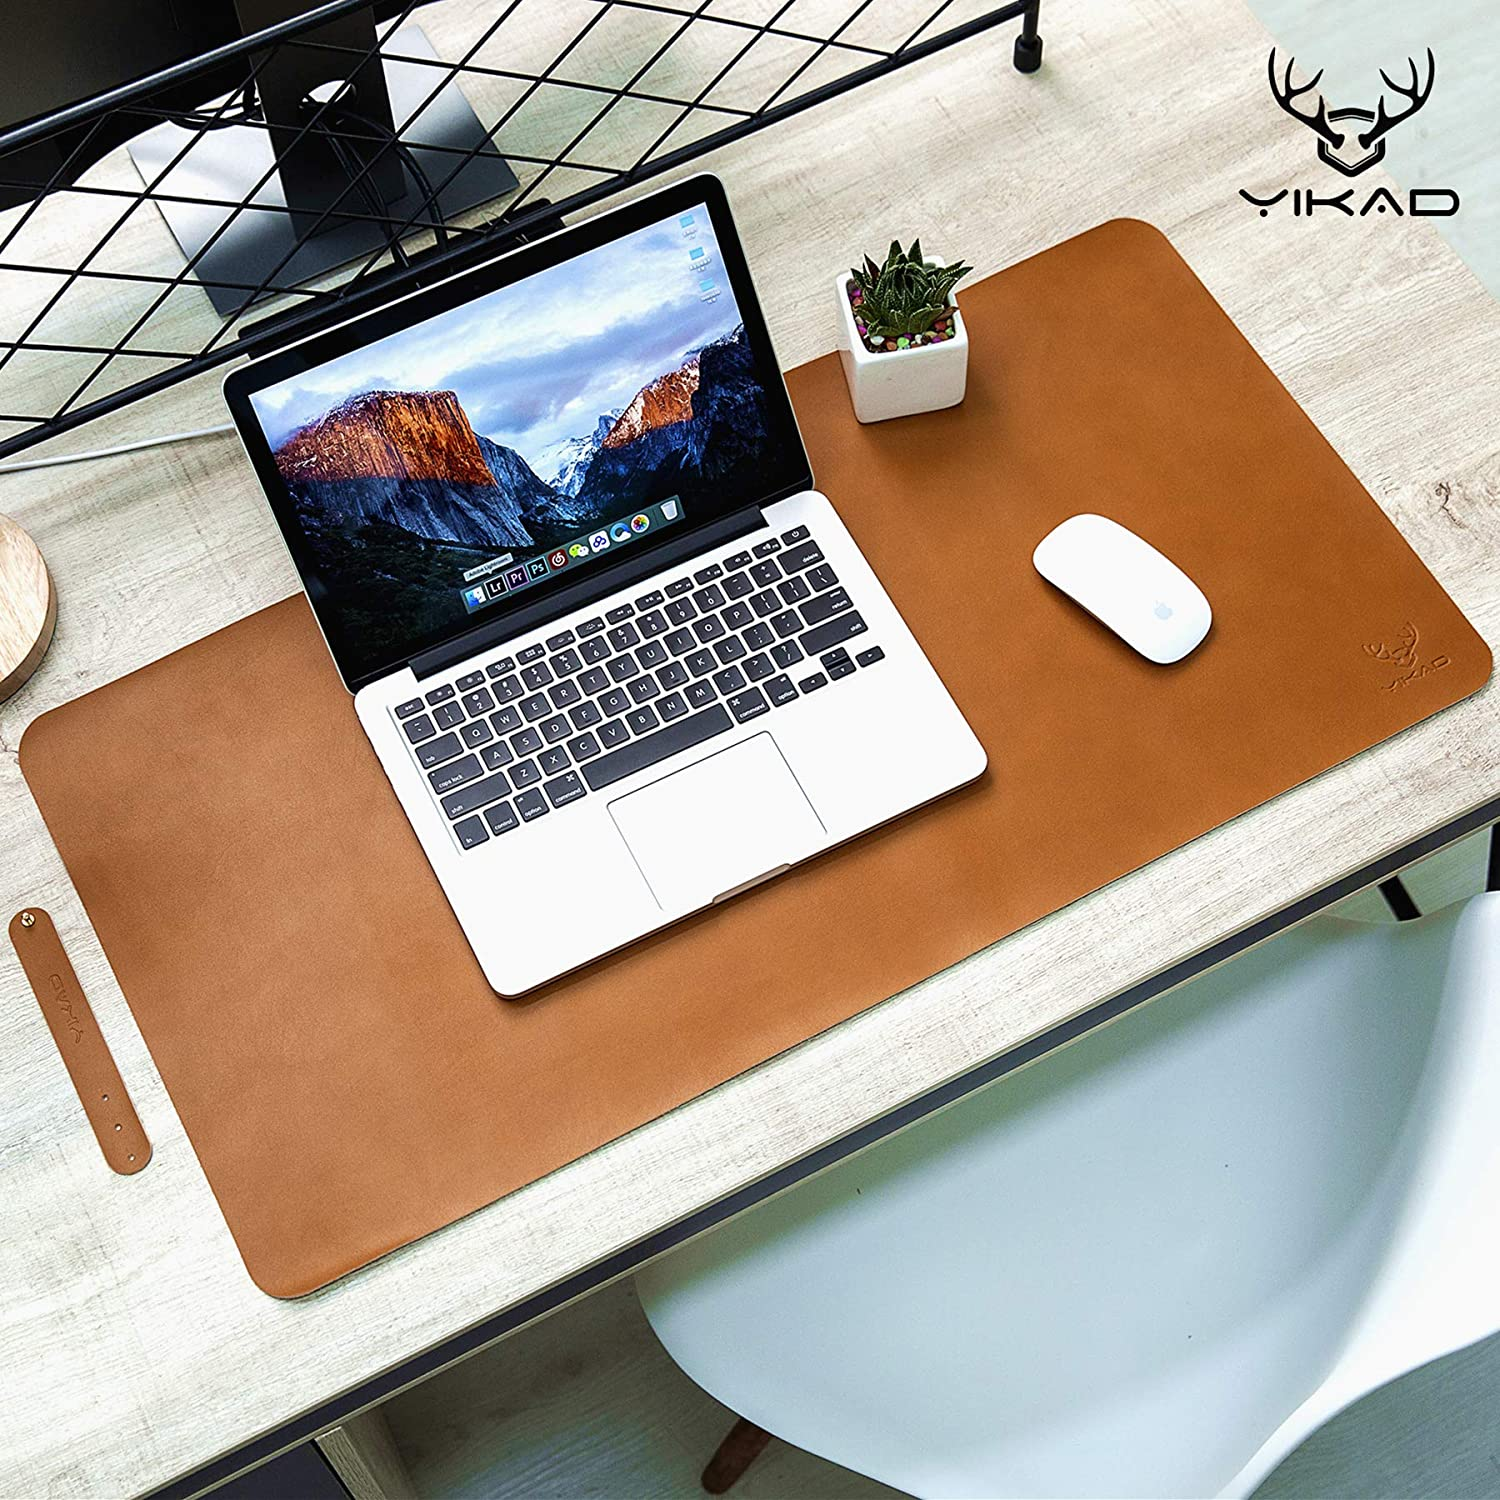 XY/&YD Ultra Thin Double Side Mouse Mat,Waterproof Extended Leather Gaming Mouse Pad Desk Mat Keyboard Pad Designed for Maximum Control-Blue 140x70cm 55x28inch